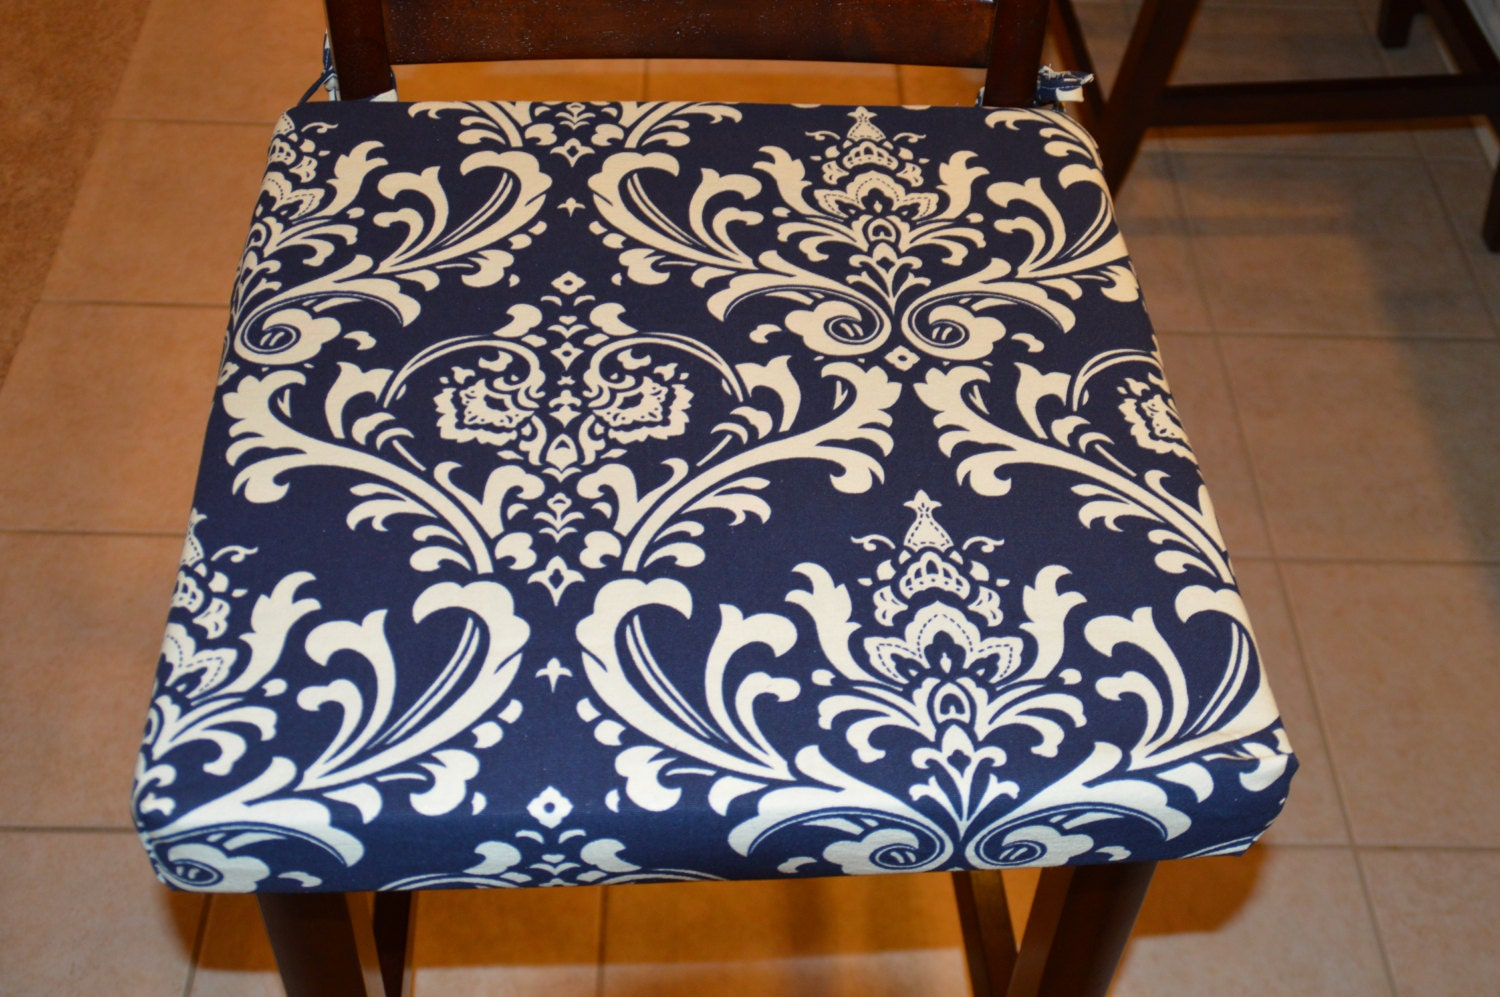 Navy Blue With Cream Twill Fabric Chair Cushion Cover